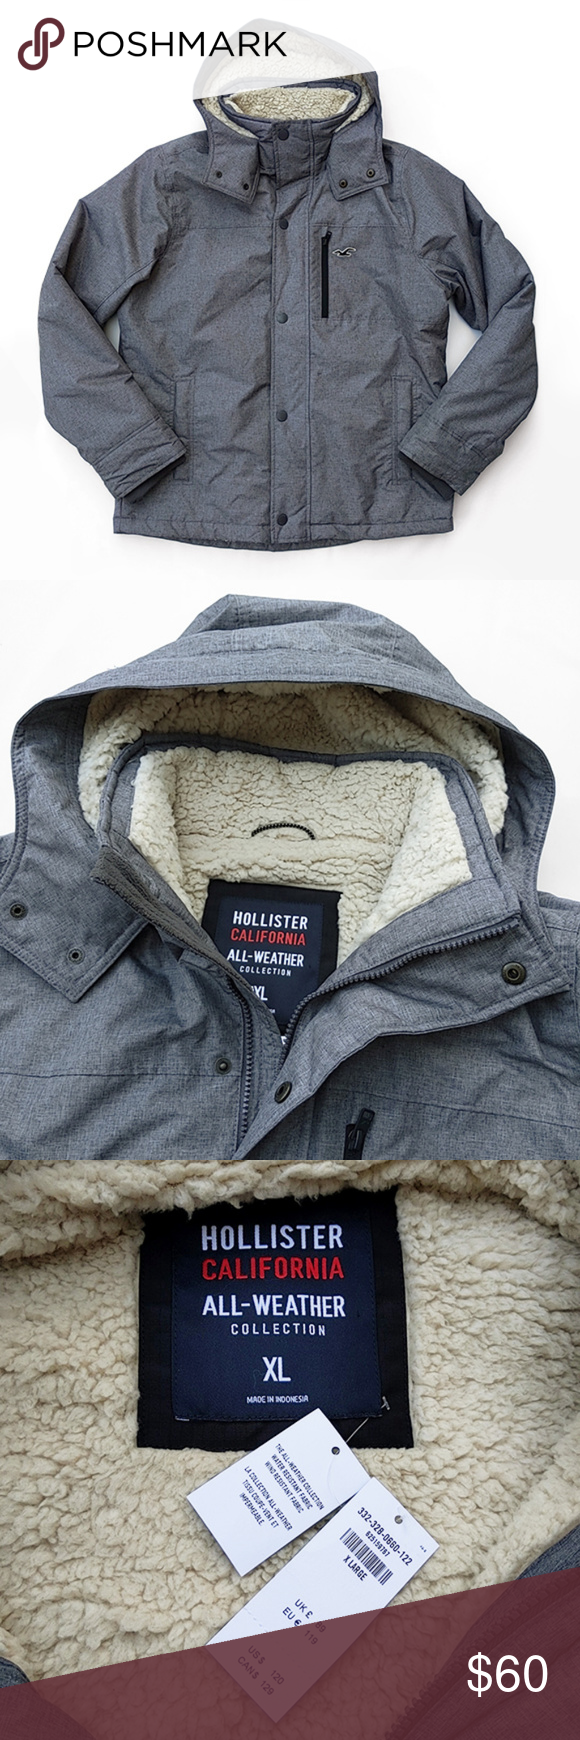 Nwt Hollister All Weather Hooded Winter Jacket Xl Winter Jackets Warm Jacket Hollister [ 1740 x 580 Pixel ]